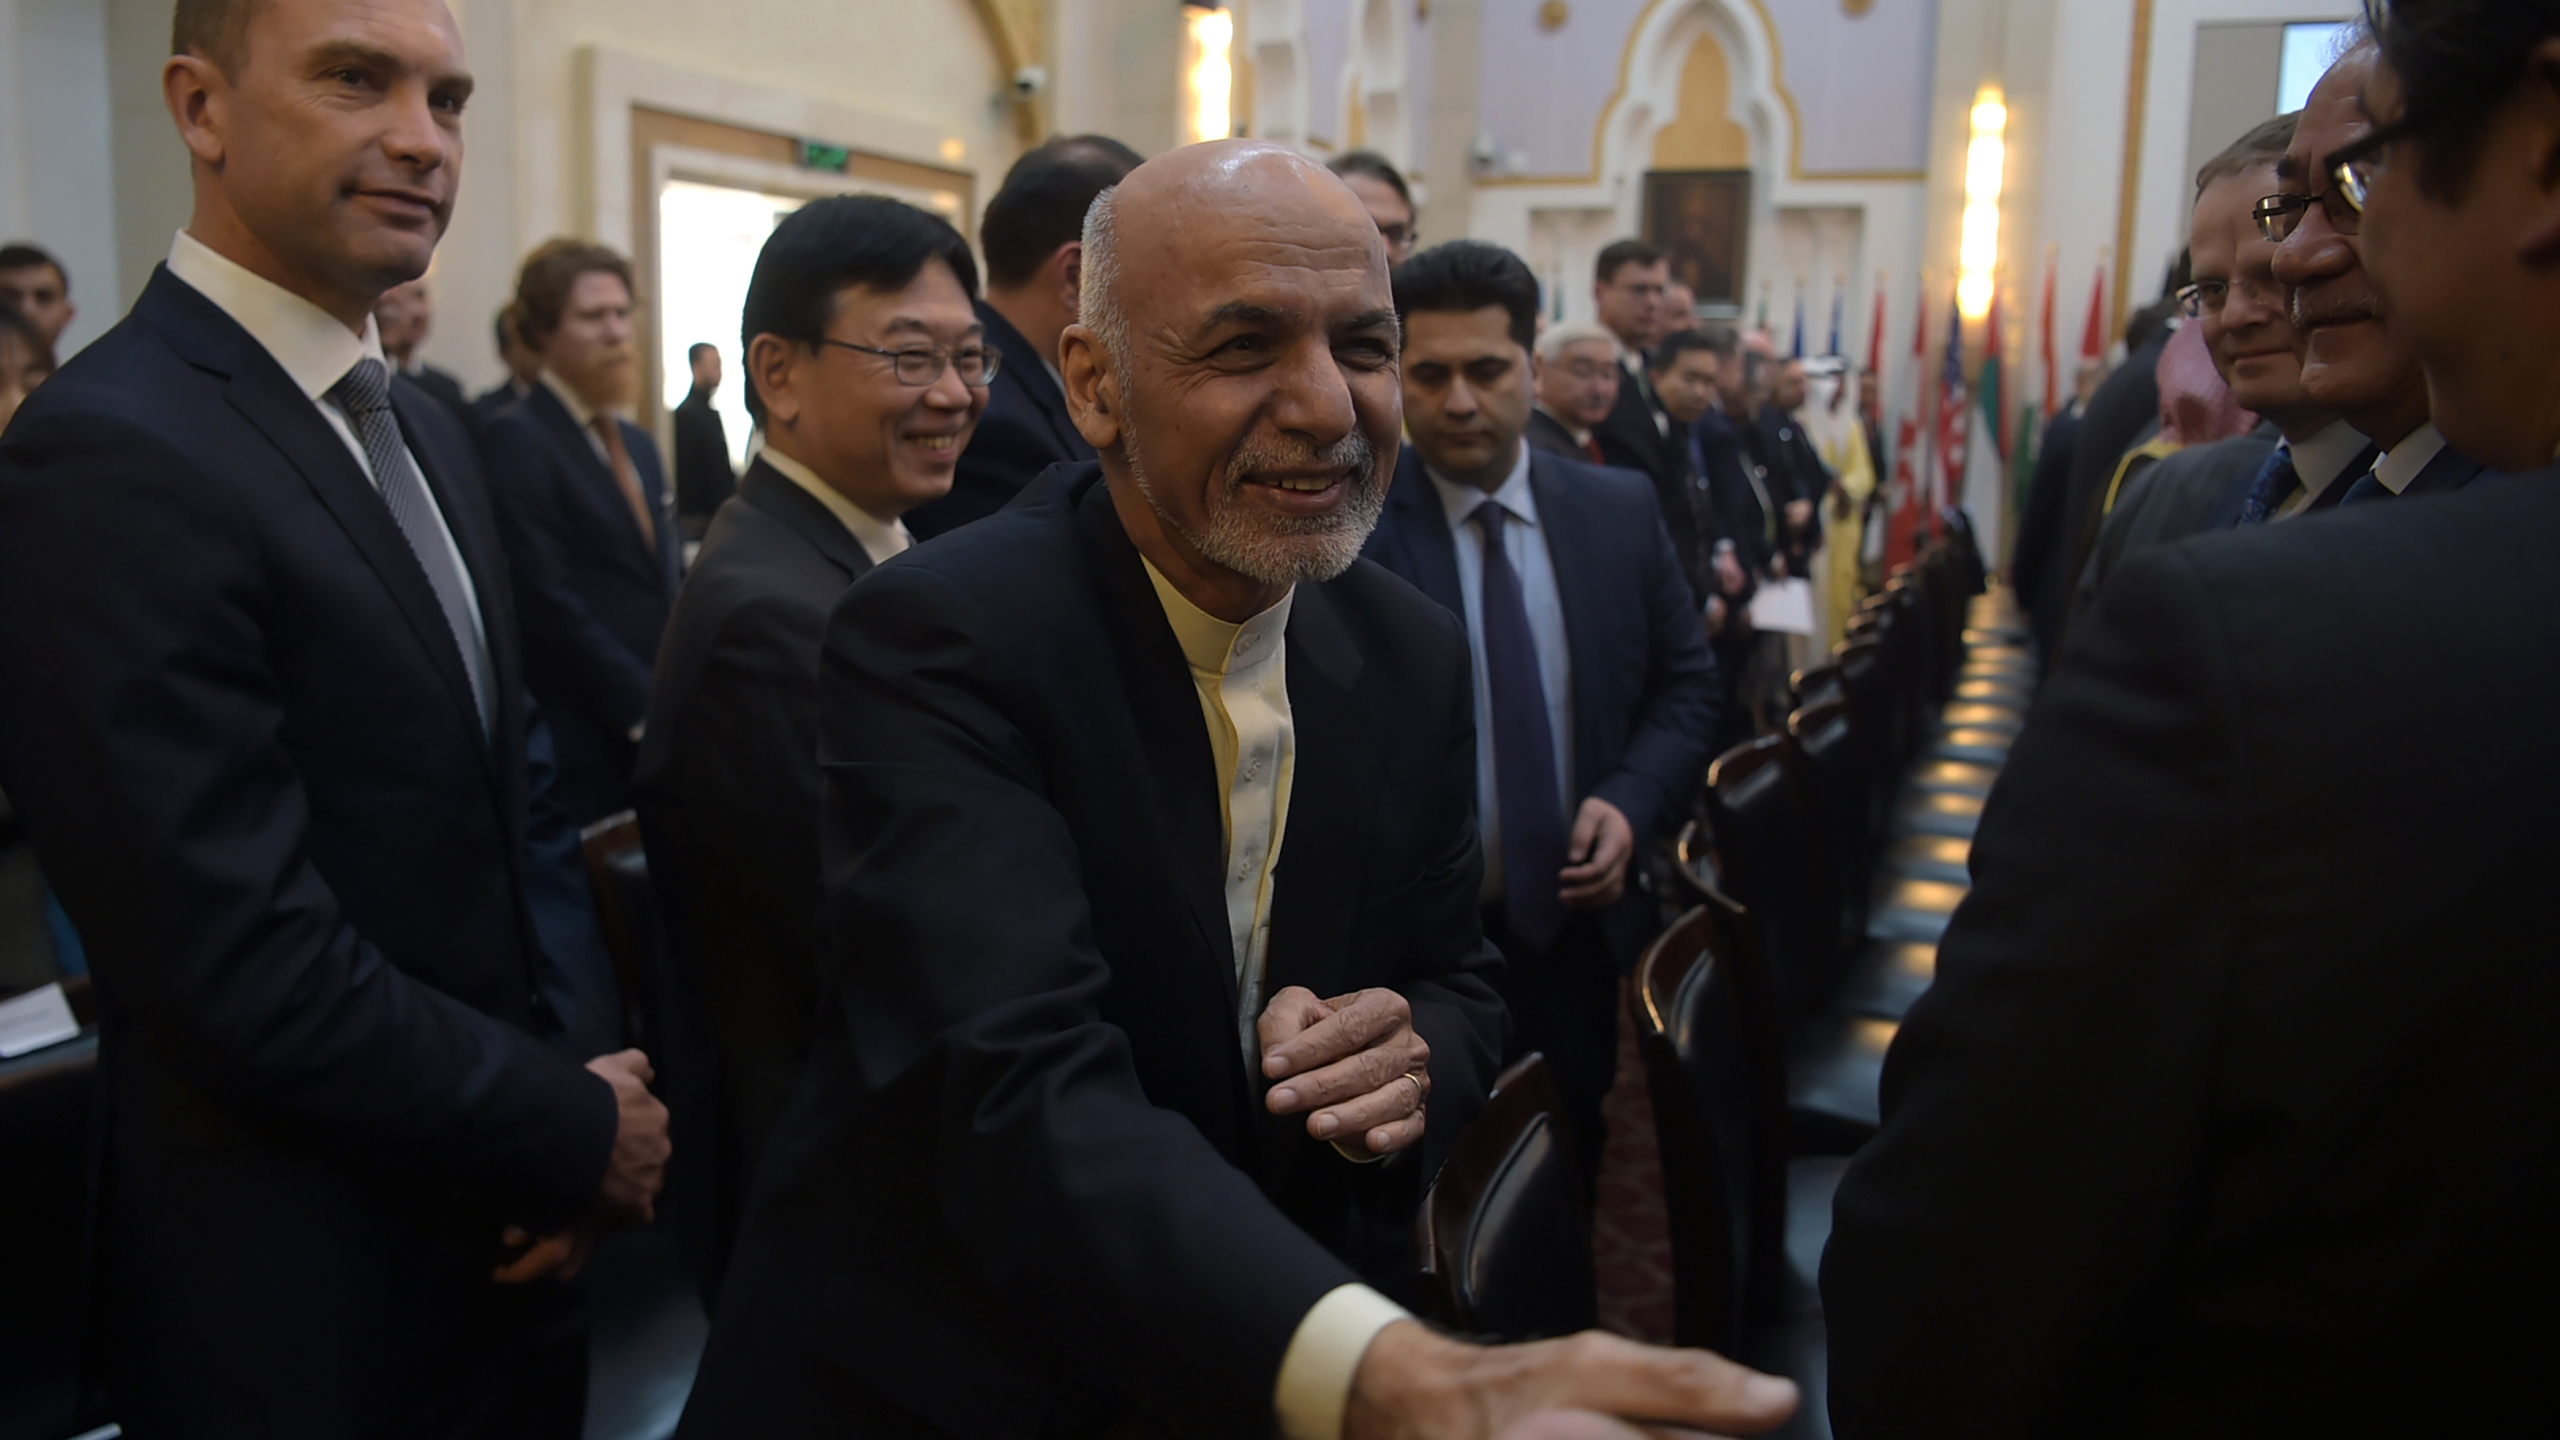 Afghan President Ashraf Ghani shakes hands with a foreign delegate at the second Kabul Process conference at the Presidential Palace in Kabul on February 28, 2018. (Credit: Shah Marai ARAI/AFP/Getty Images)